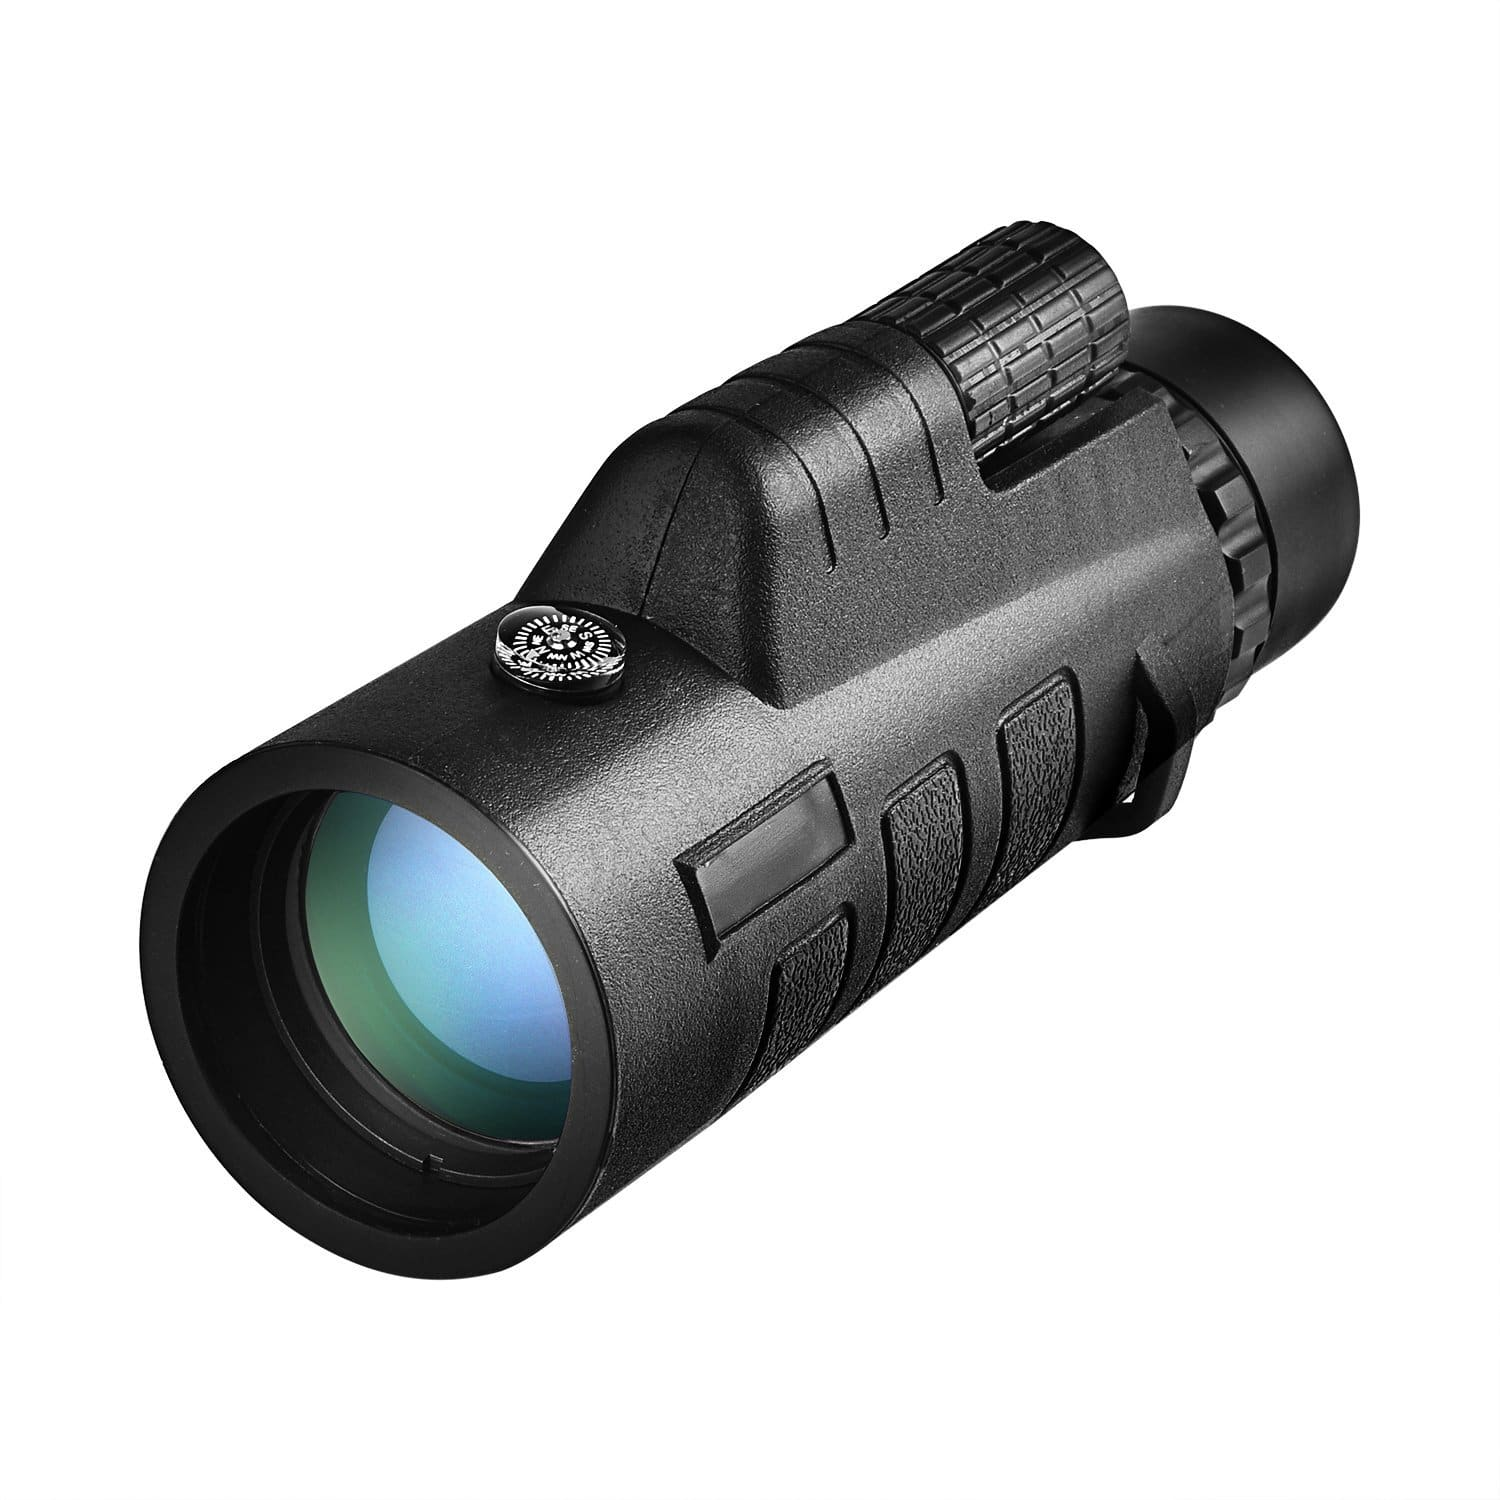 CVLIFE 12x50 Compact Monocular Telescope Pocket Mono Spotting Scope W/ Compass and Pouch for $8.99